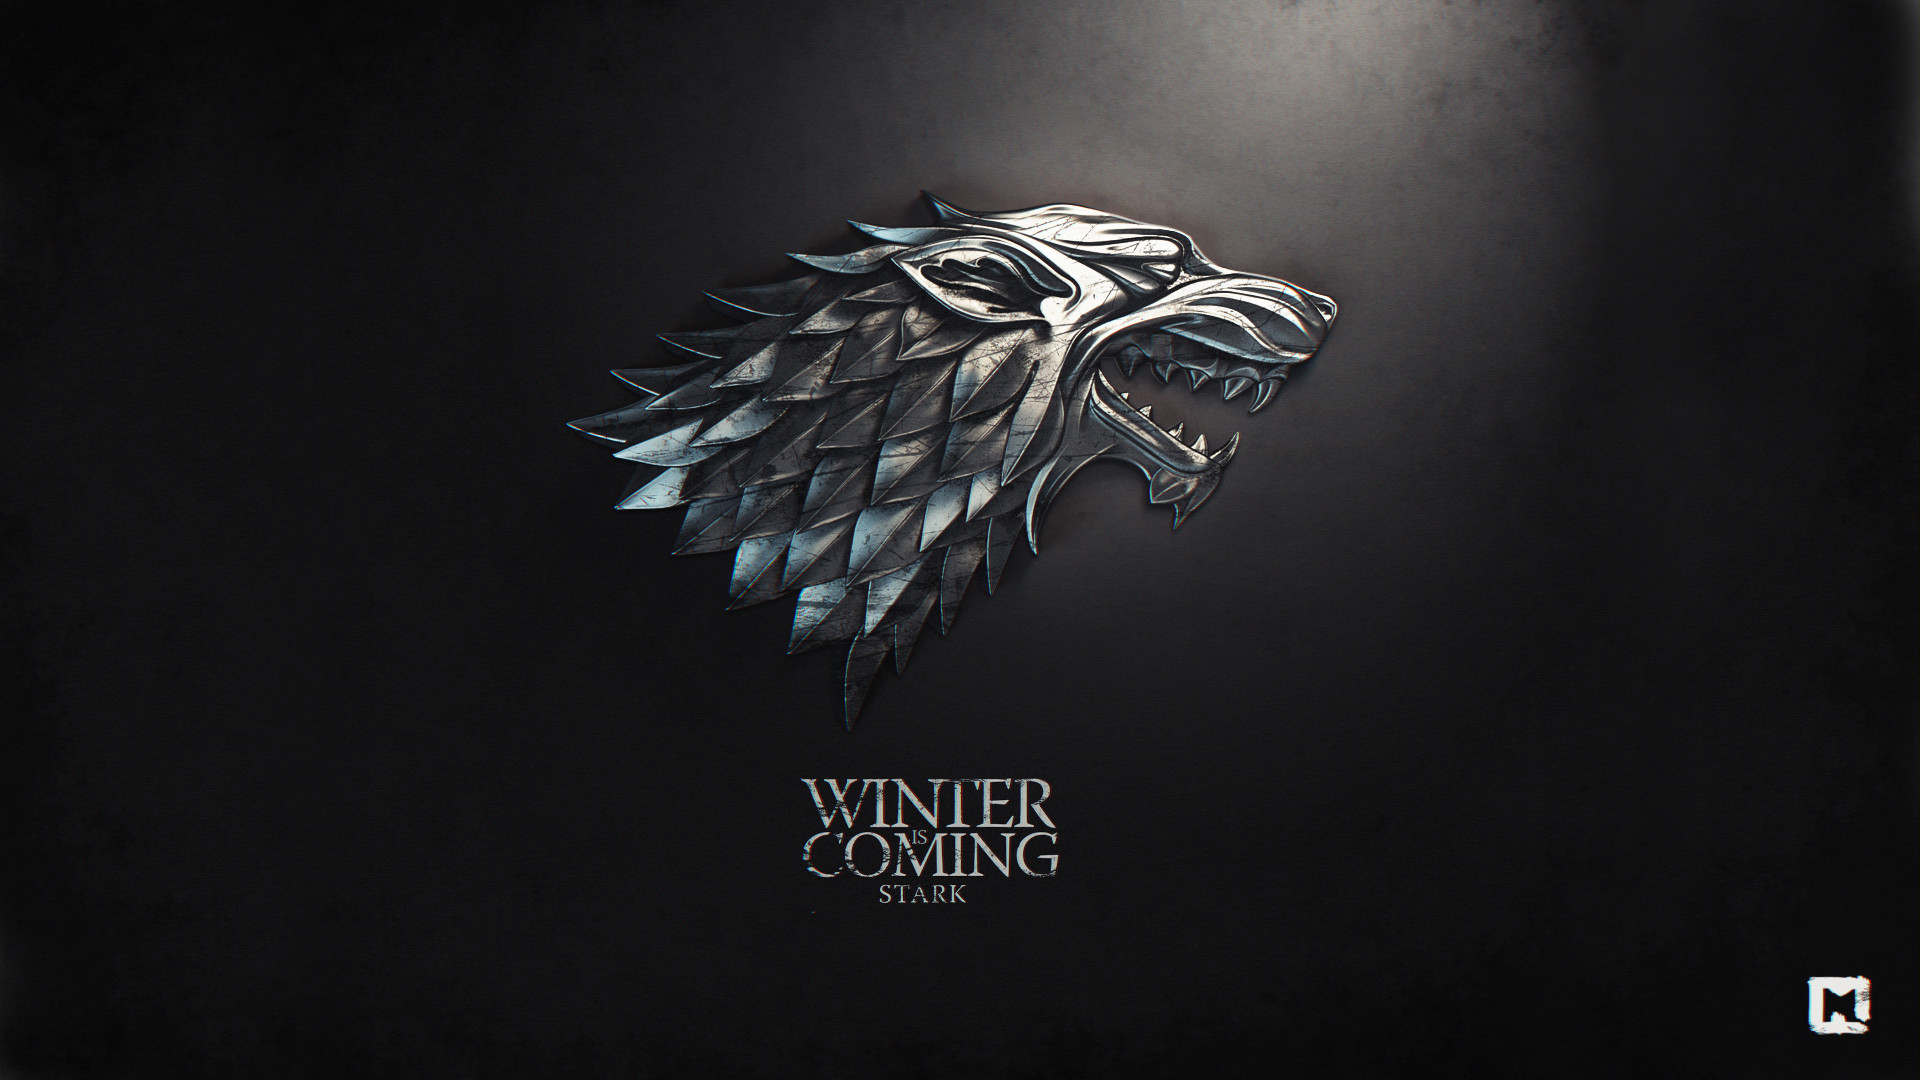 Game of Thrones House Wallpapers   Album on Imgur 1920x1080